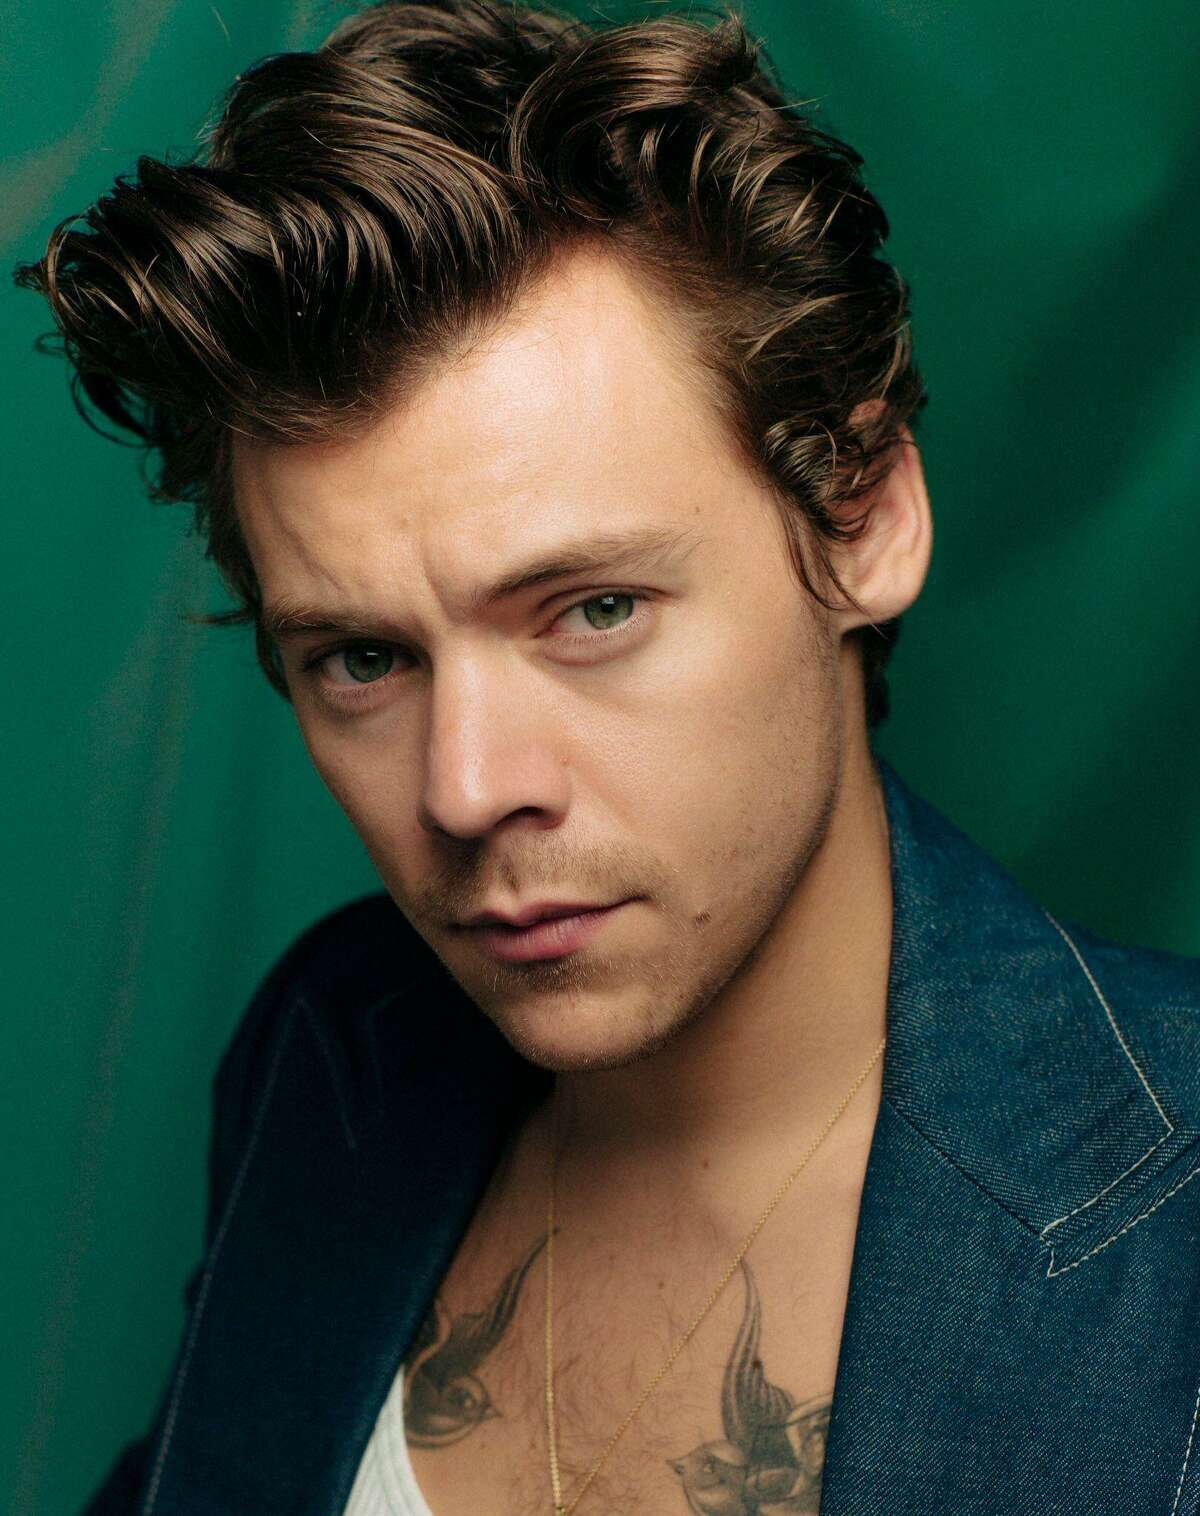 Grammy Award-winning global superstar Harry Styles will perform Oct. 21 and Oct. 23 at the Mohegan Sun Arena in Uncasville.